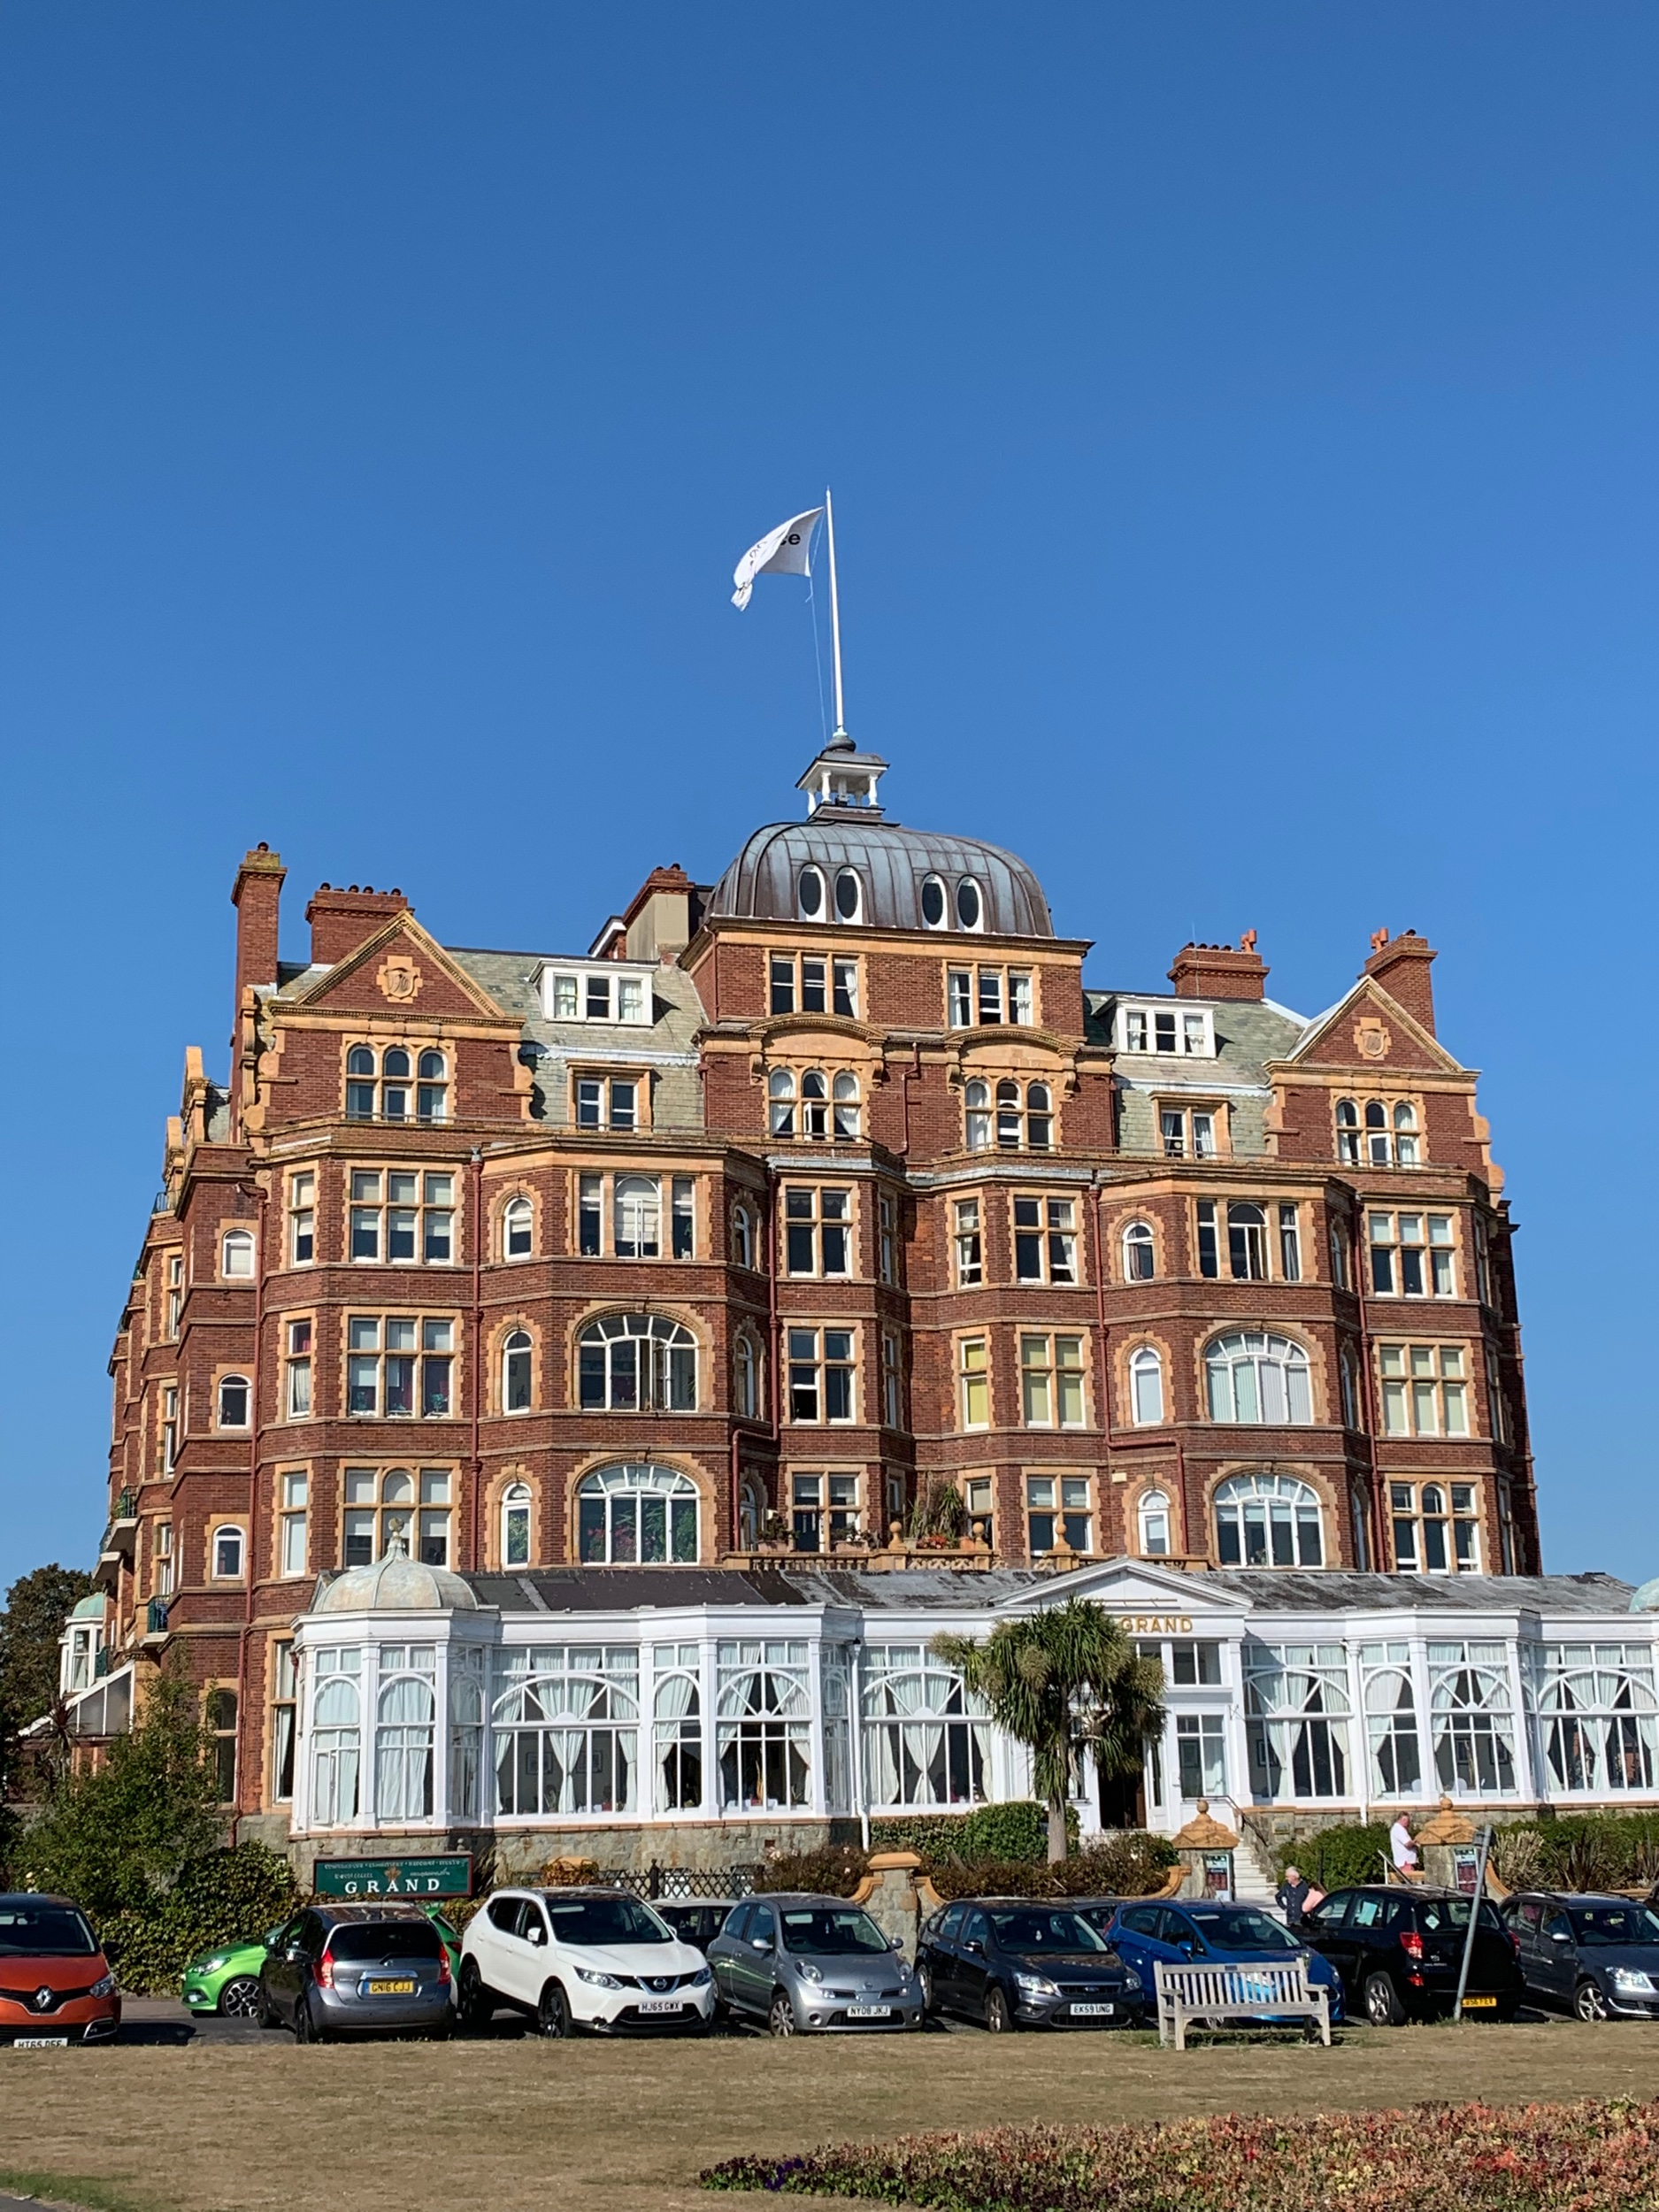 The Grand hotel . Folkestone was really rocking in Victorian times. King Edward 7th used to stay here with his mistress Alice Keppel, and sometimes the queen, as well. You can still rent a room and/or dine here and they offer tours on Fridays.  At the very top, a light blinks 'Earth Peace' in Morse code. This is an art installation by Yoko Ono.